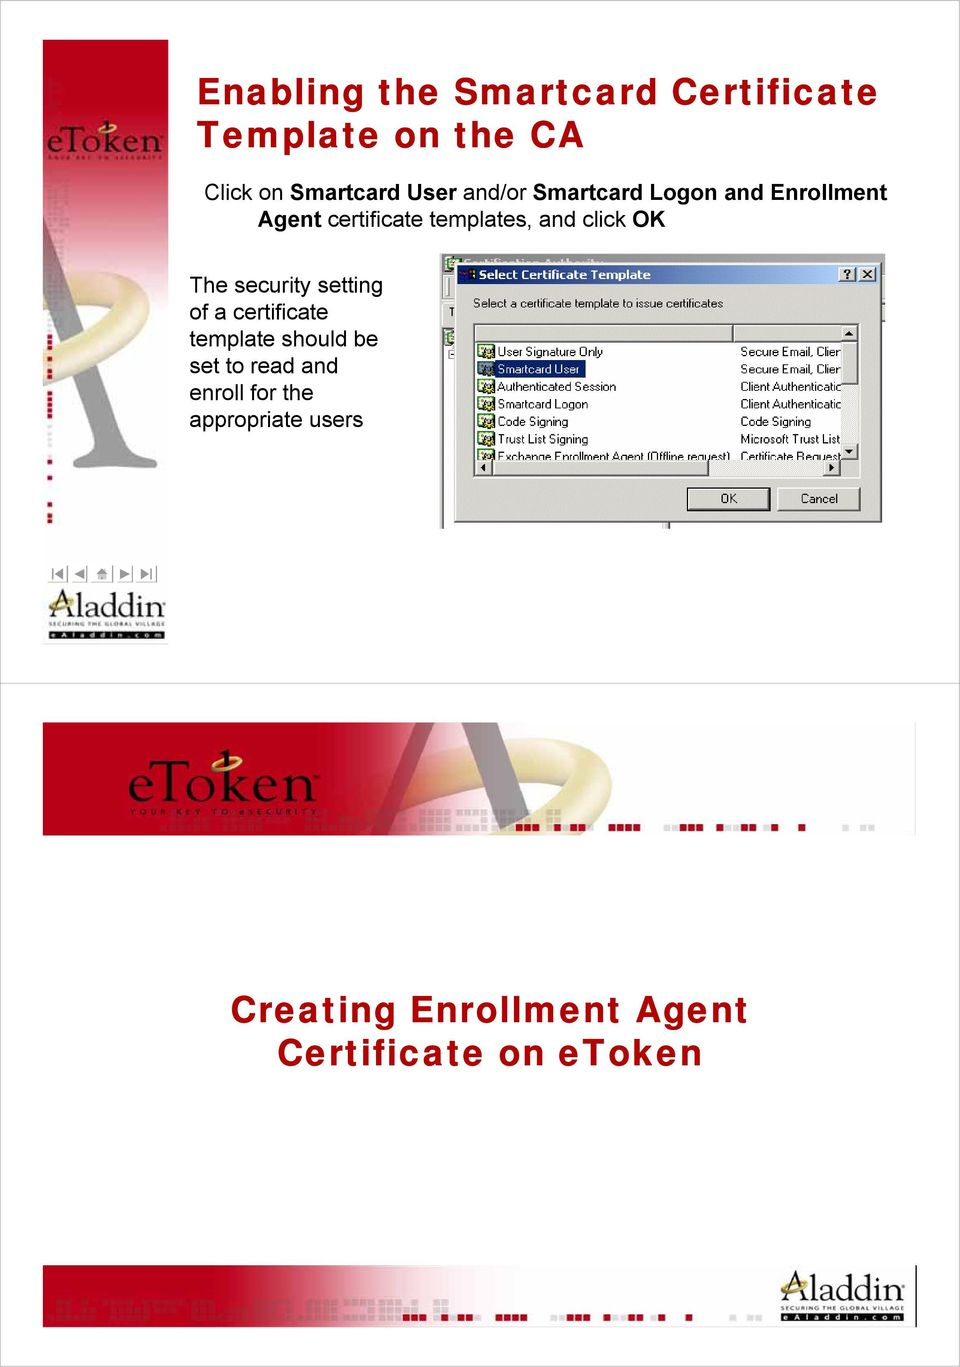 OK The security setting of a certificate template should be set to read and